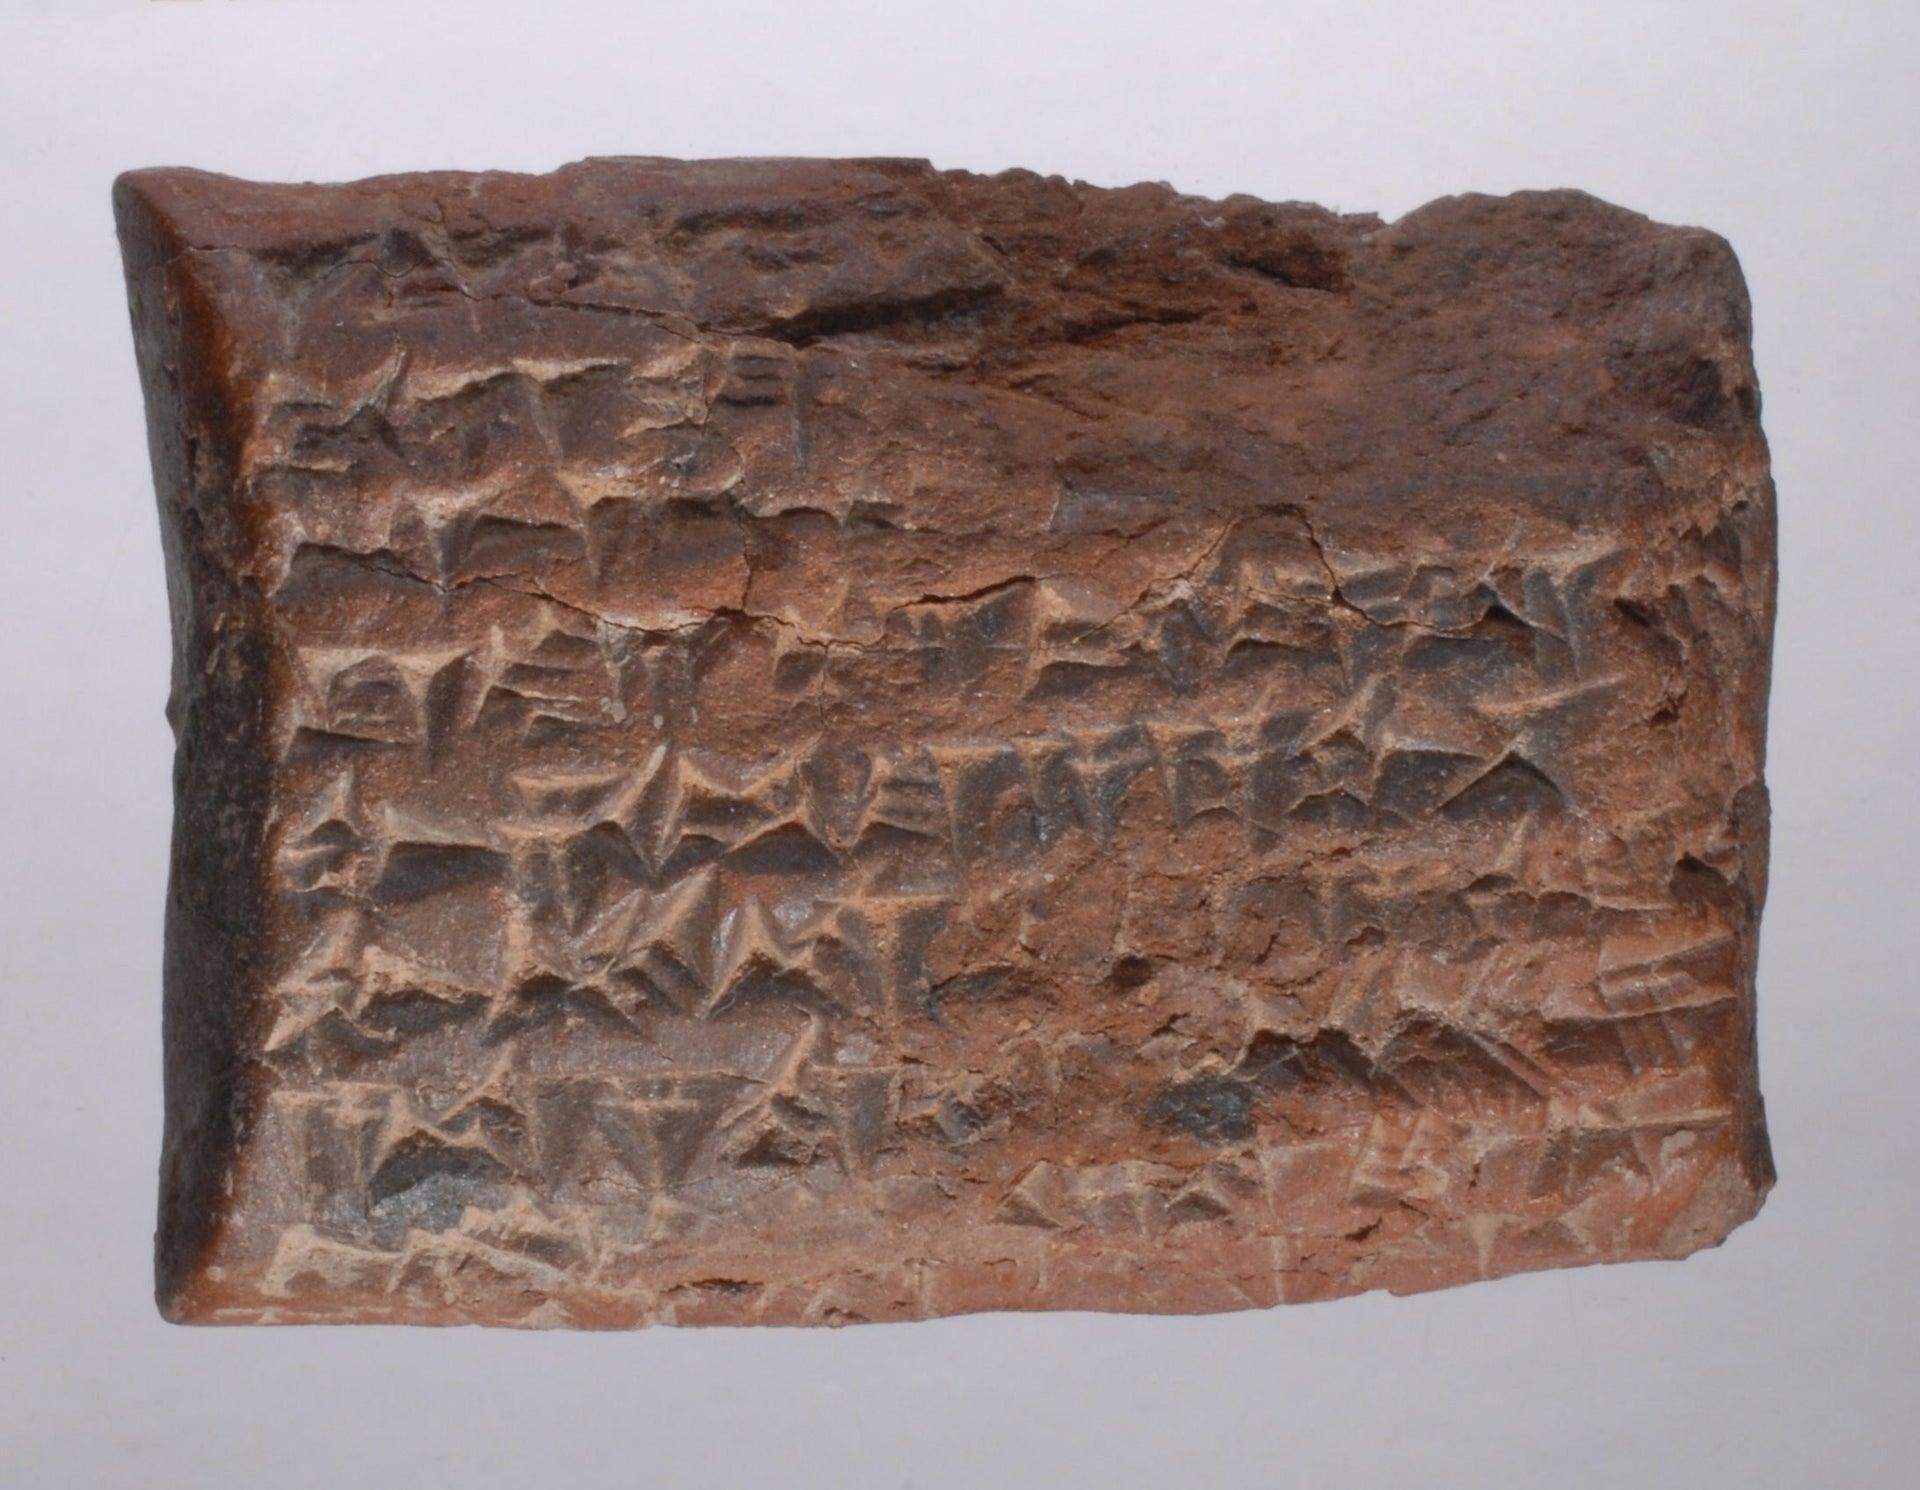 Cuneiform tablet found at Hadid, with non-Yahwistic names.